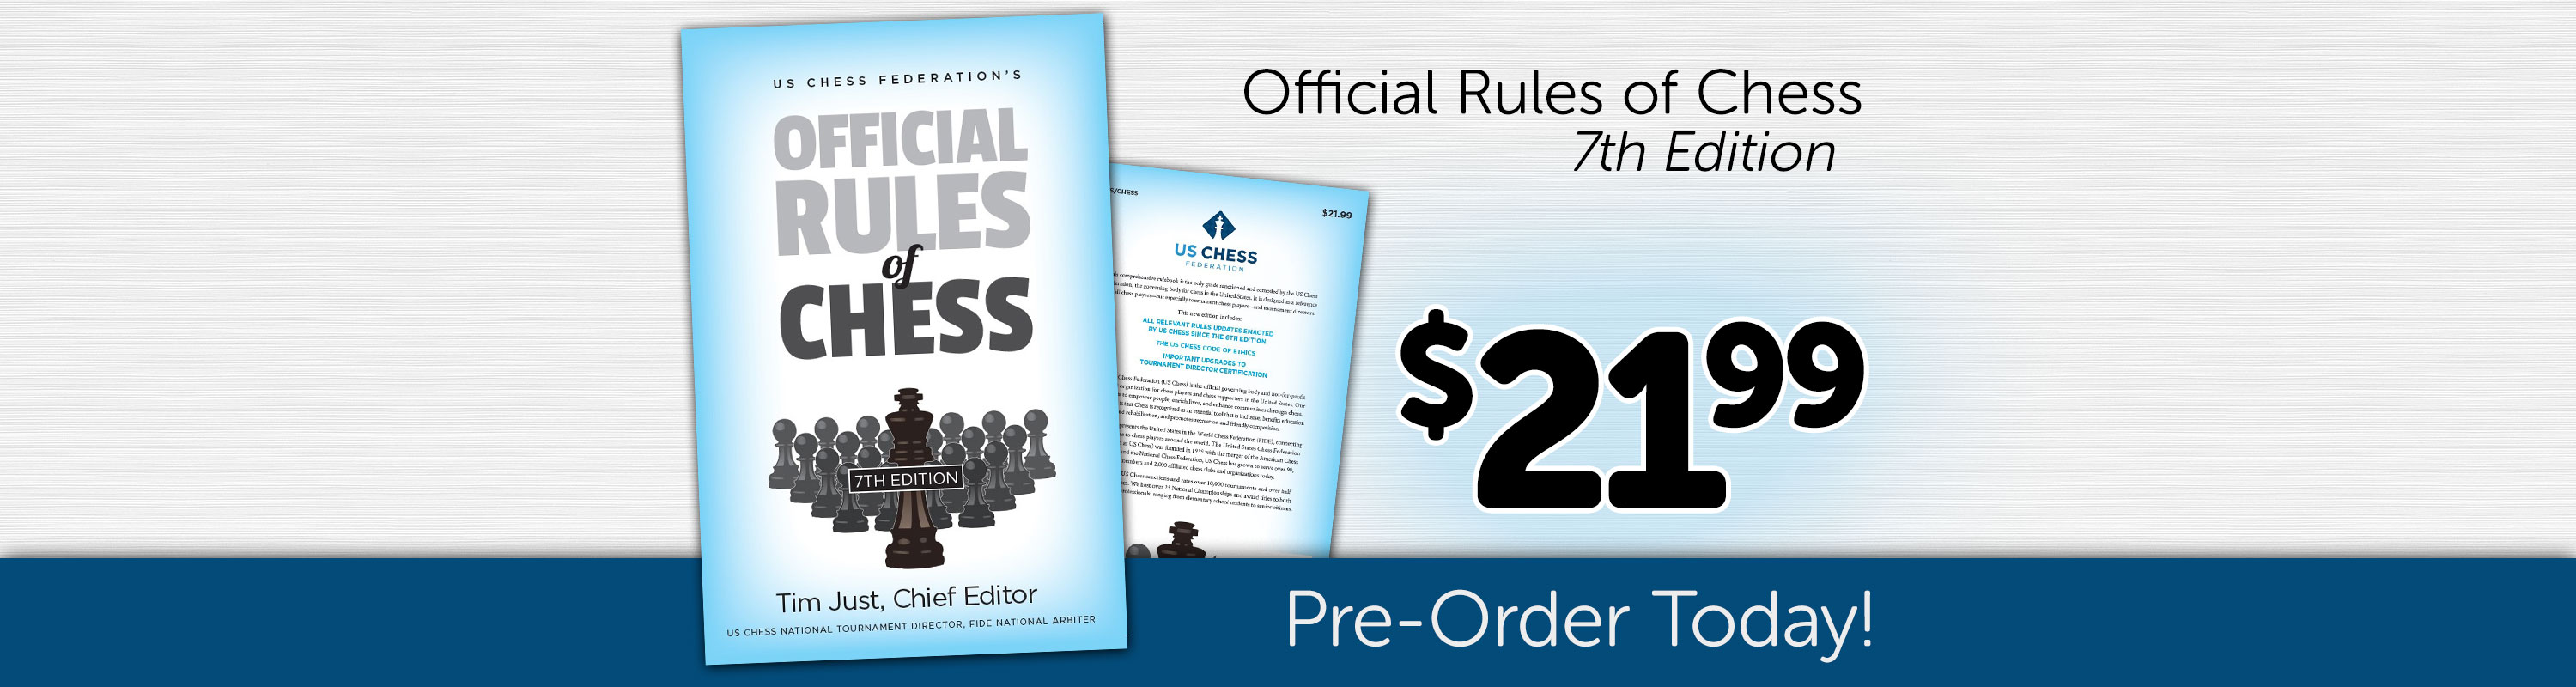 Official Rules of Chess - 7th Edition